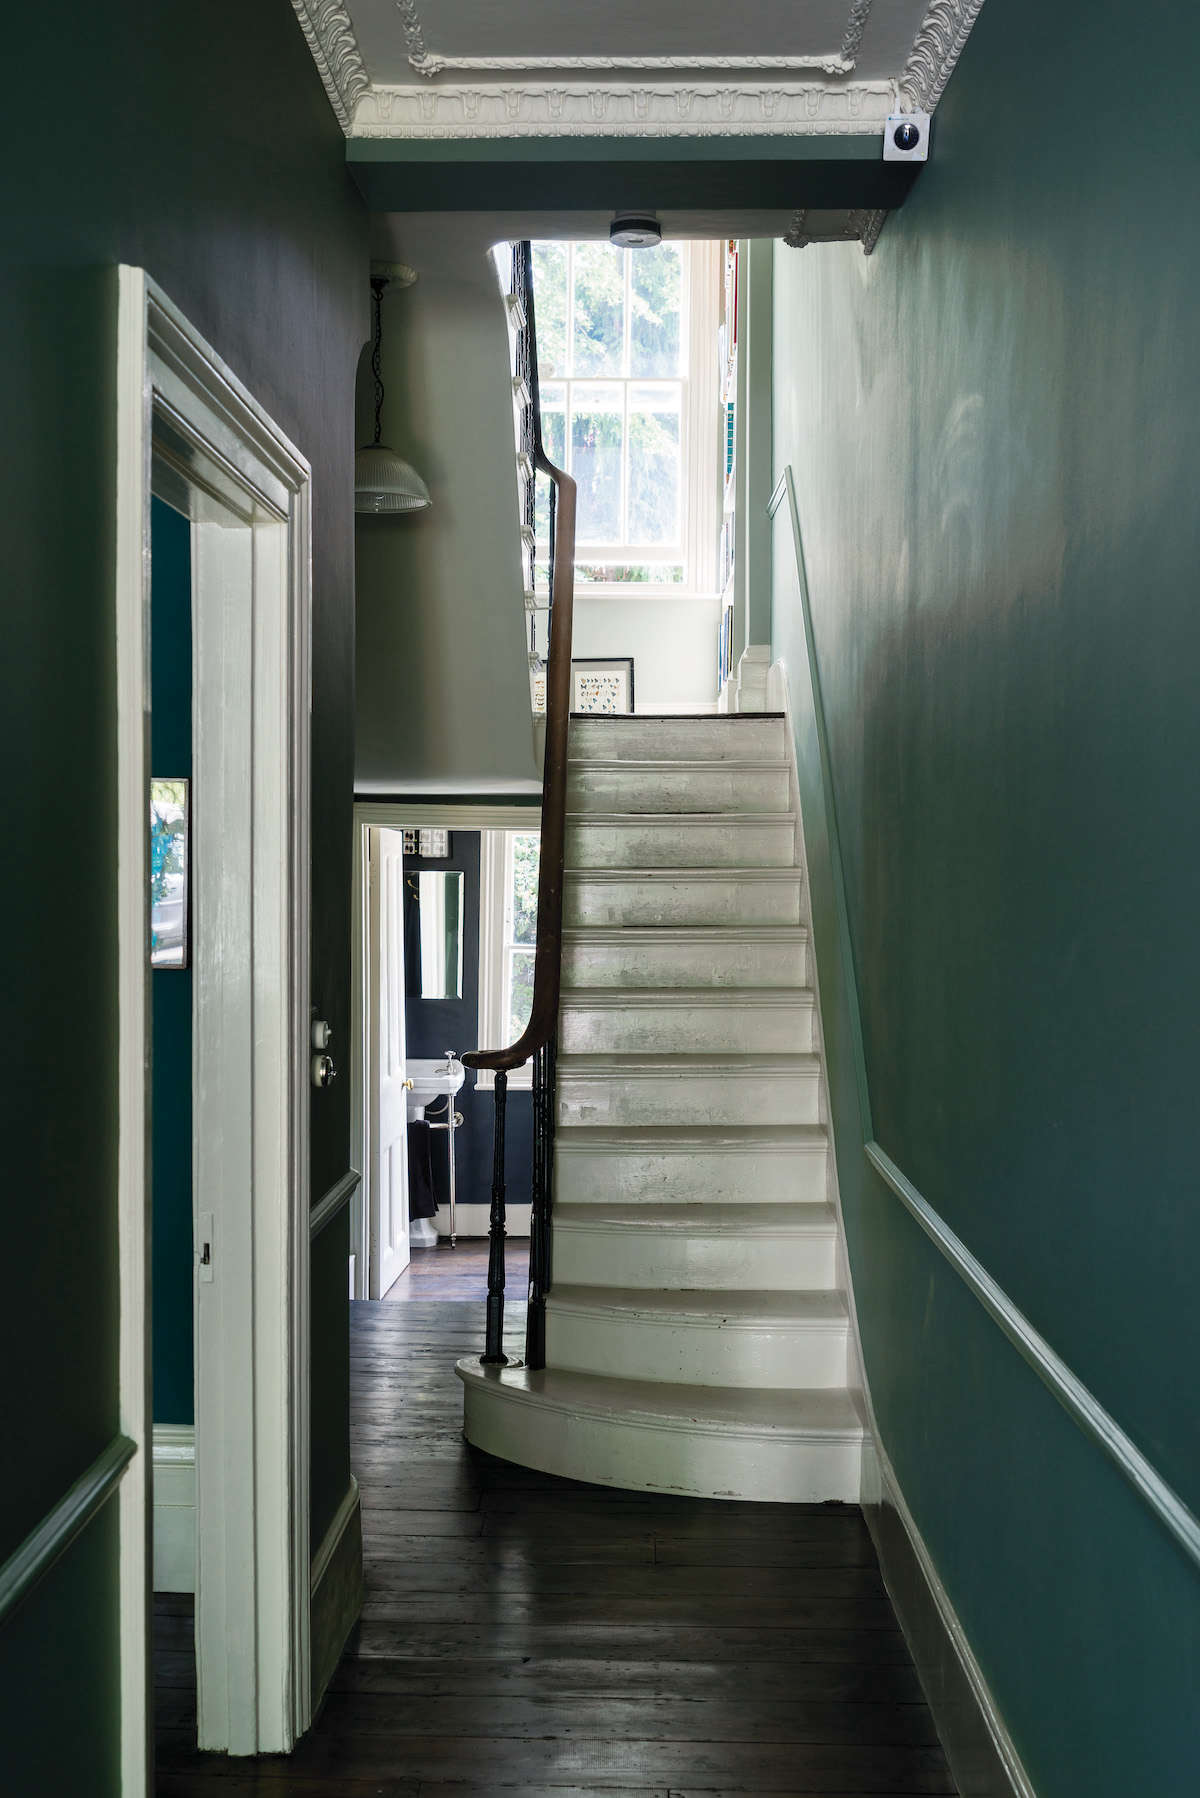 Farrow And Ball Railings Paint a new book from farrow & ball: how to decorate - remodelista